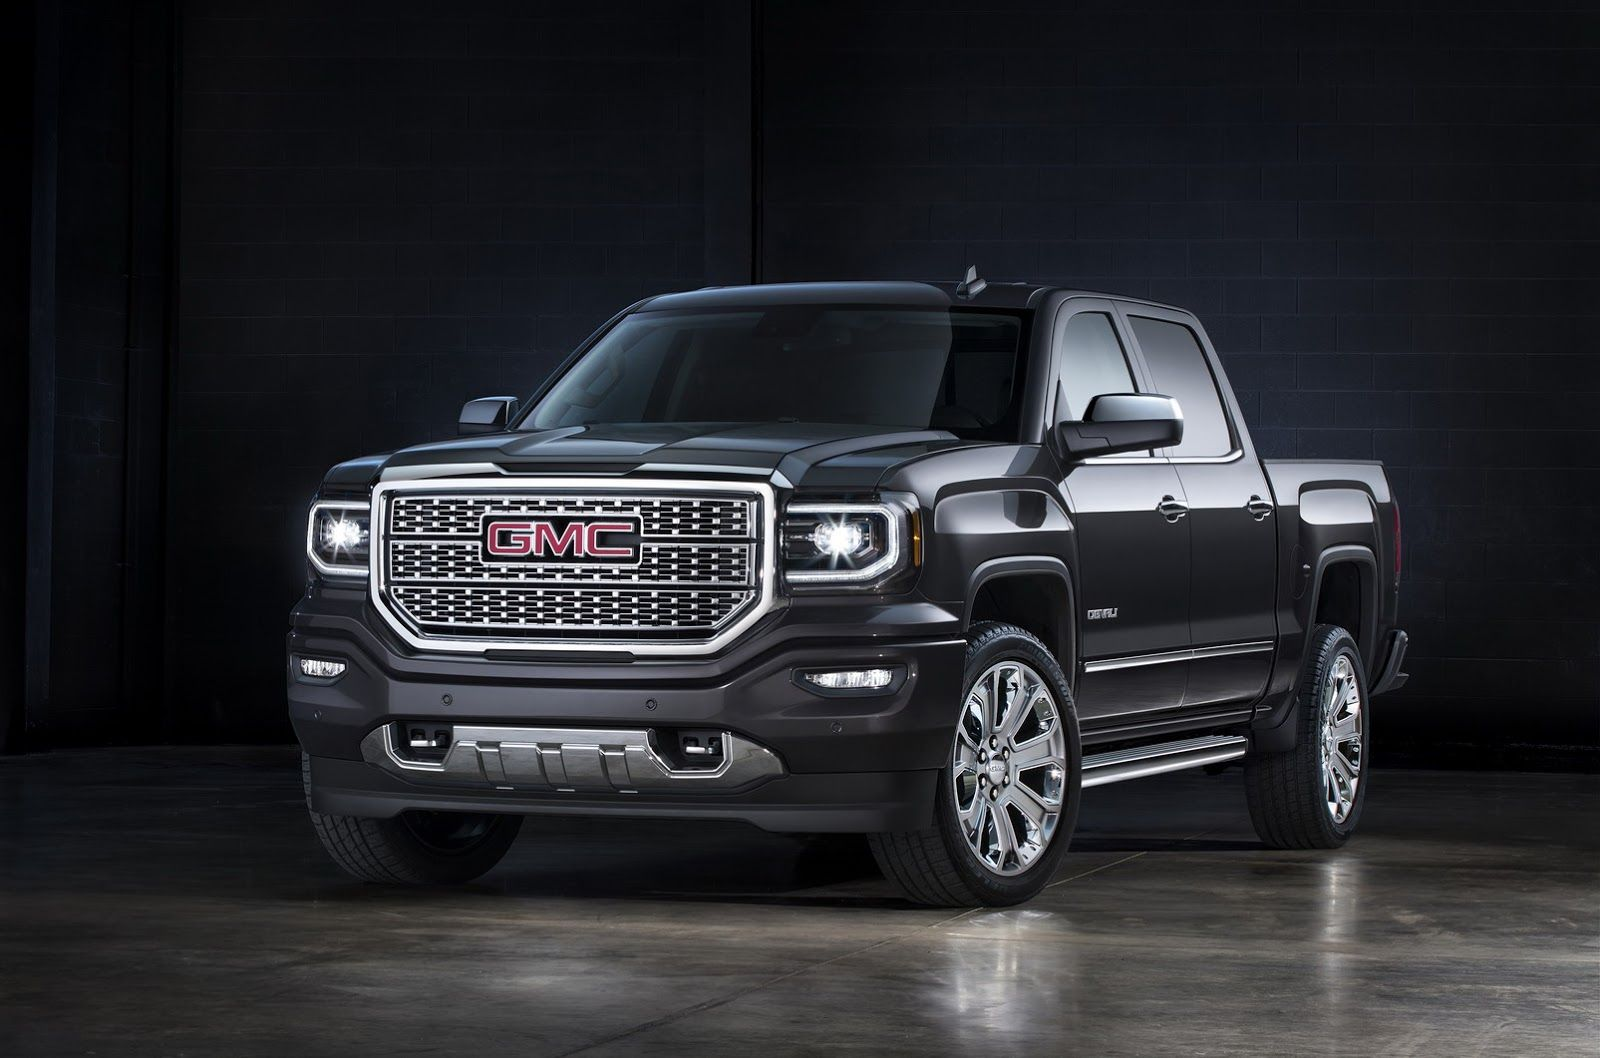 Gmc Doubles Up On 2016 Sierra Denali With Ultimate Edition Carscoops Gmc Sierra Denali Sierra Denali Gmc Sierra